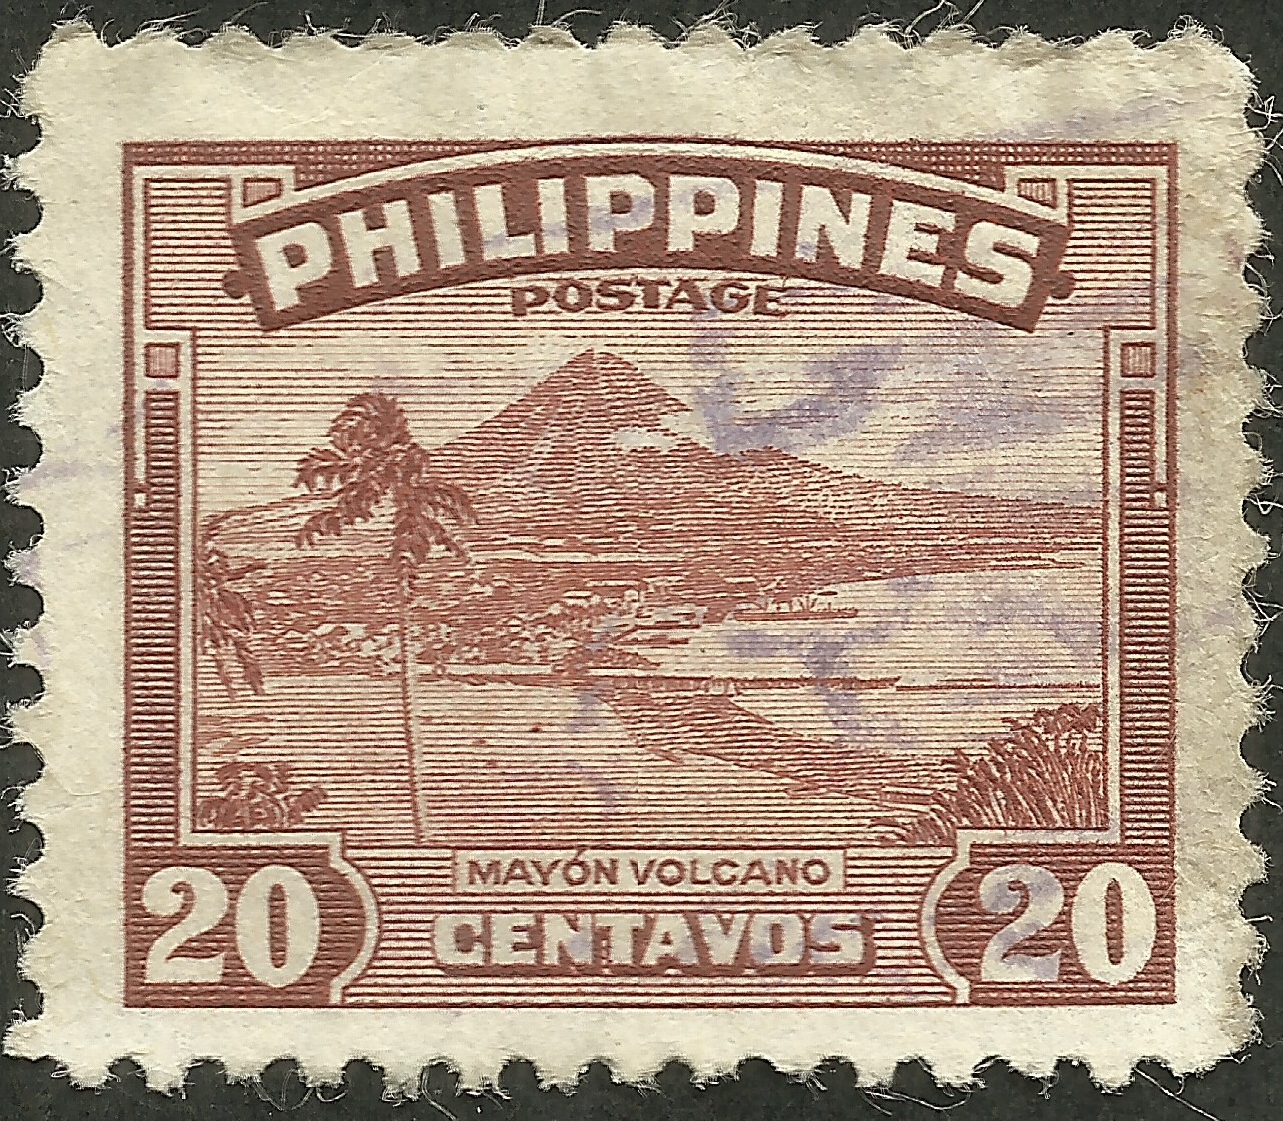 Republic of The Philippines #508 (1947)